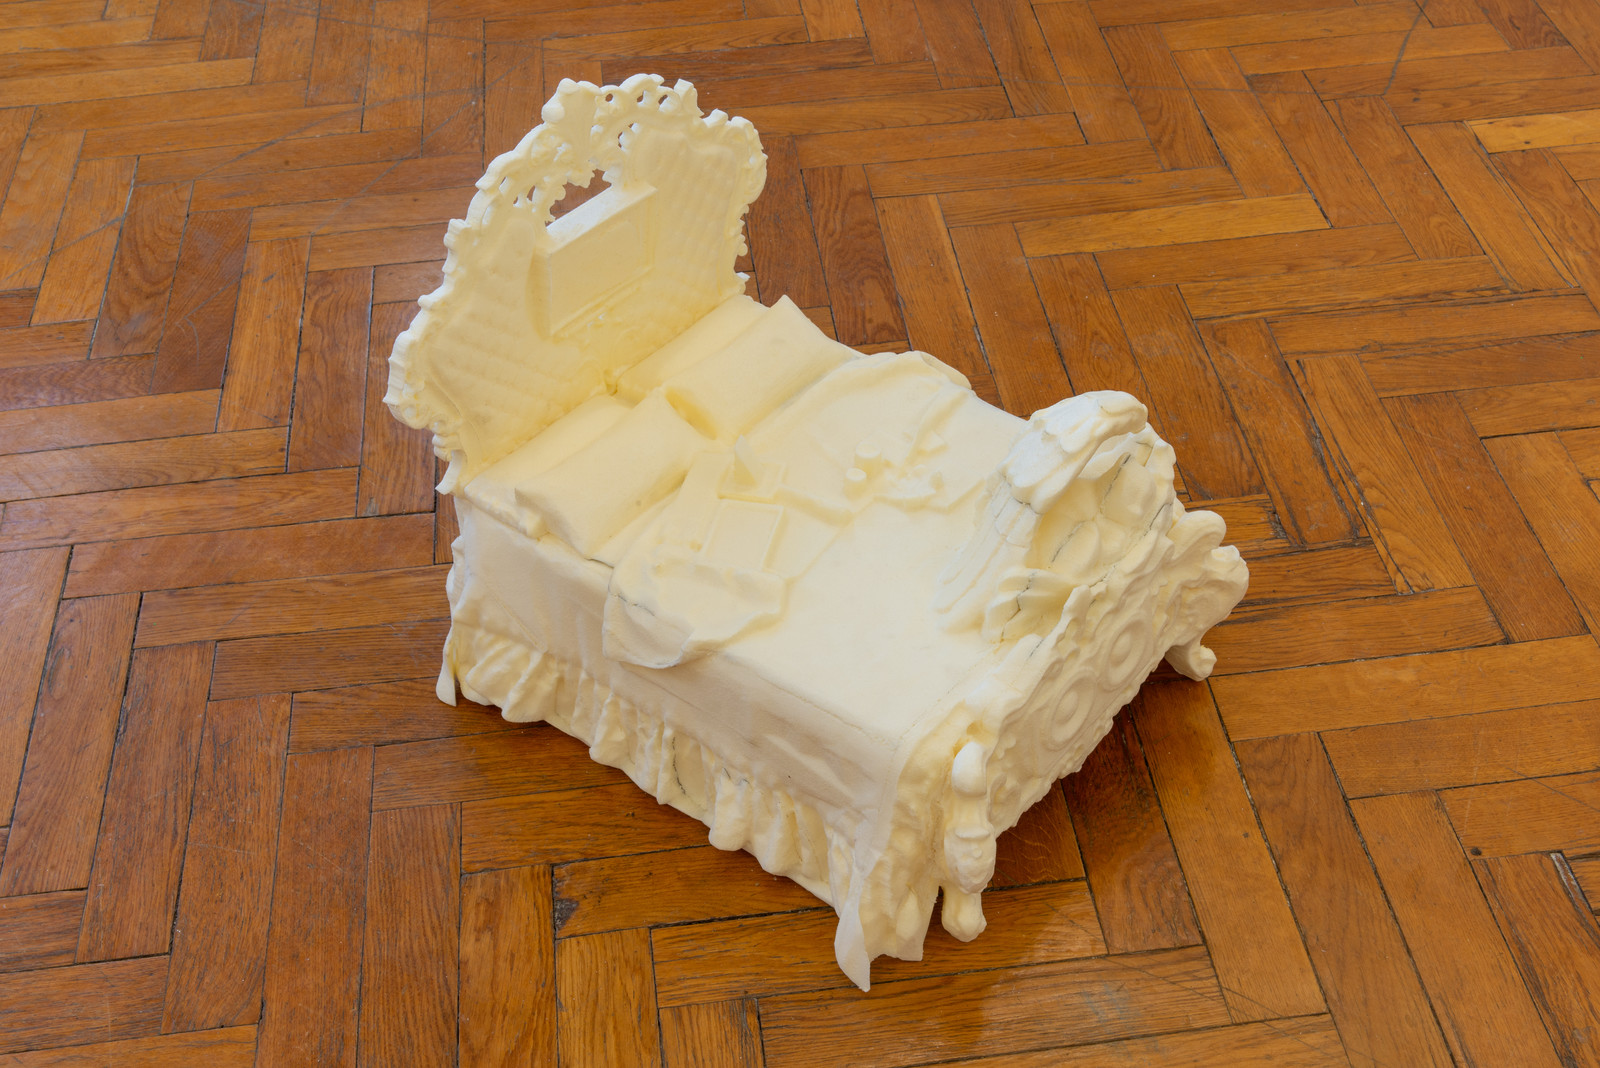 Genevieve Goffman, Dreambed, Extra-Cloud Edition, (Tower and the City #5), 2020.